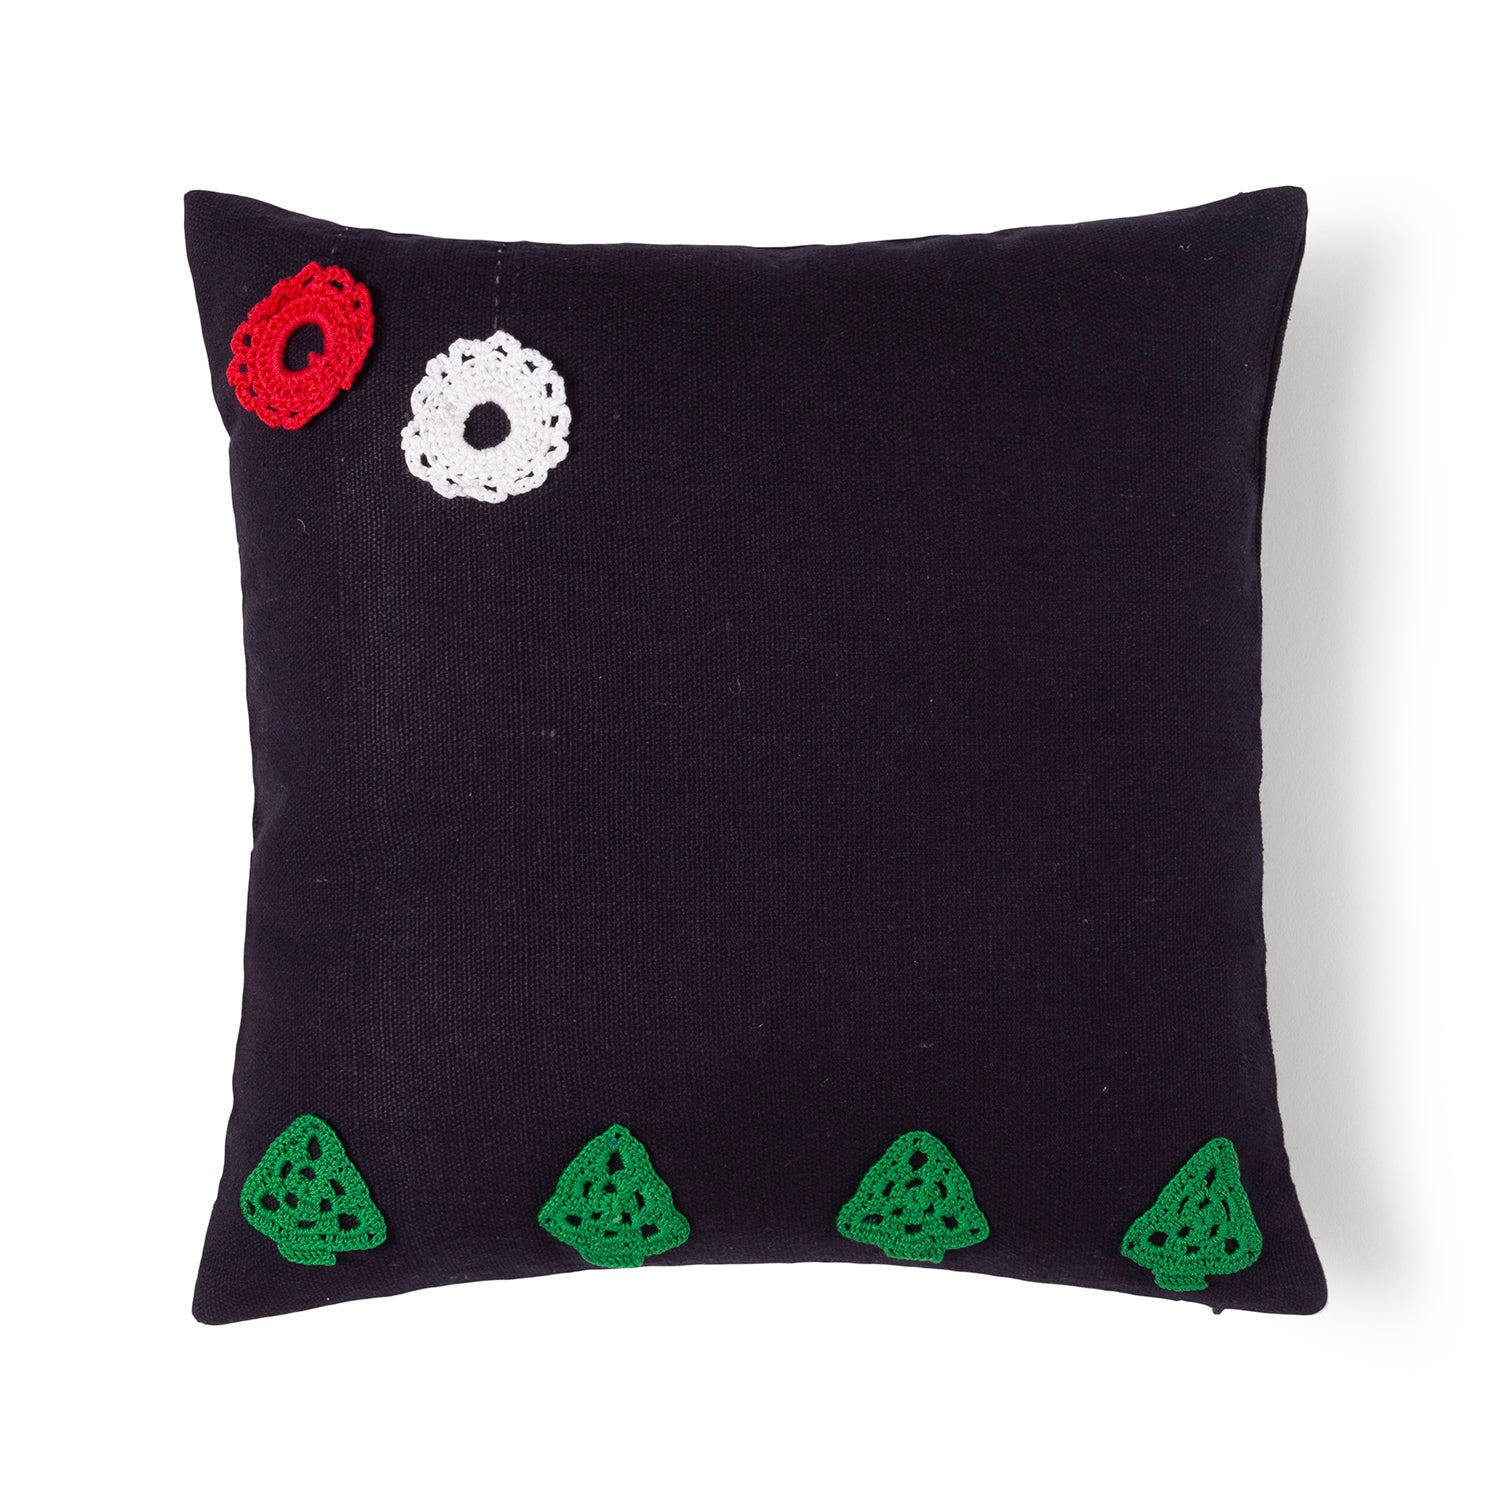 Christmas Cushion - 12x12